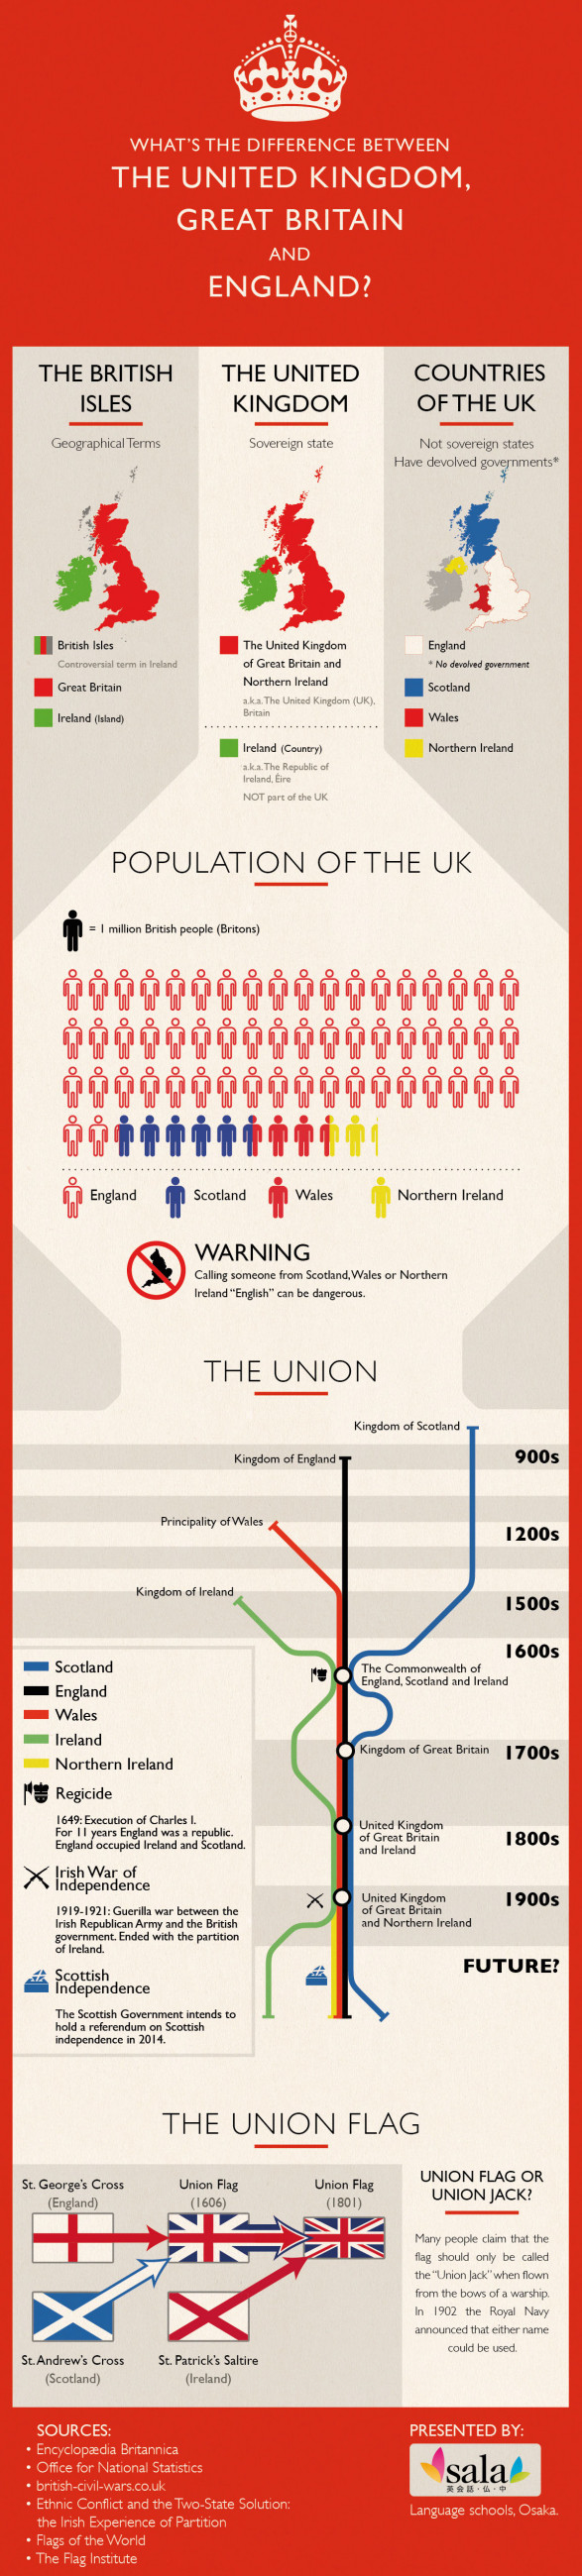 The difference between the United Kingdom, Great Britain and England